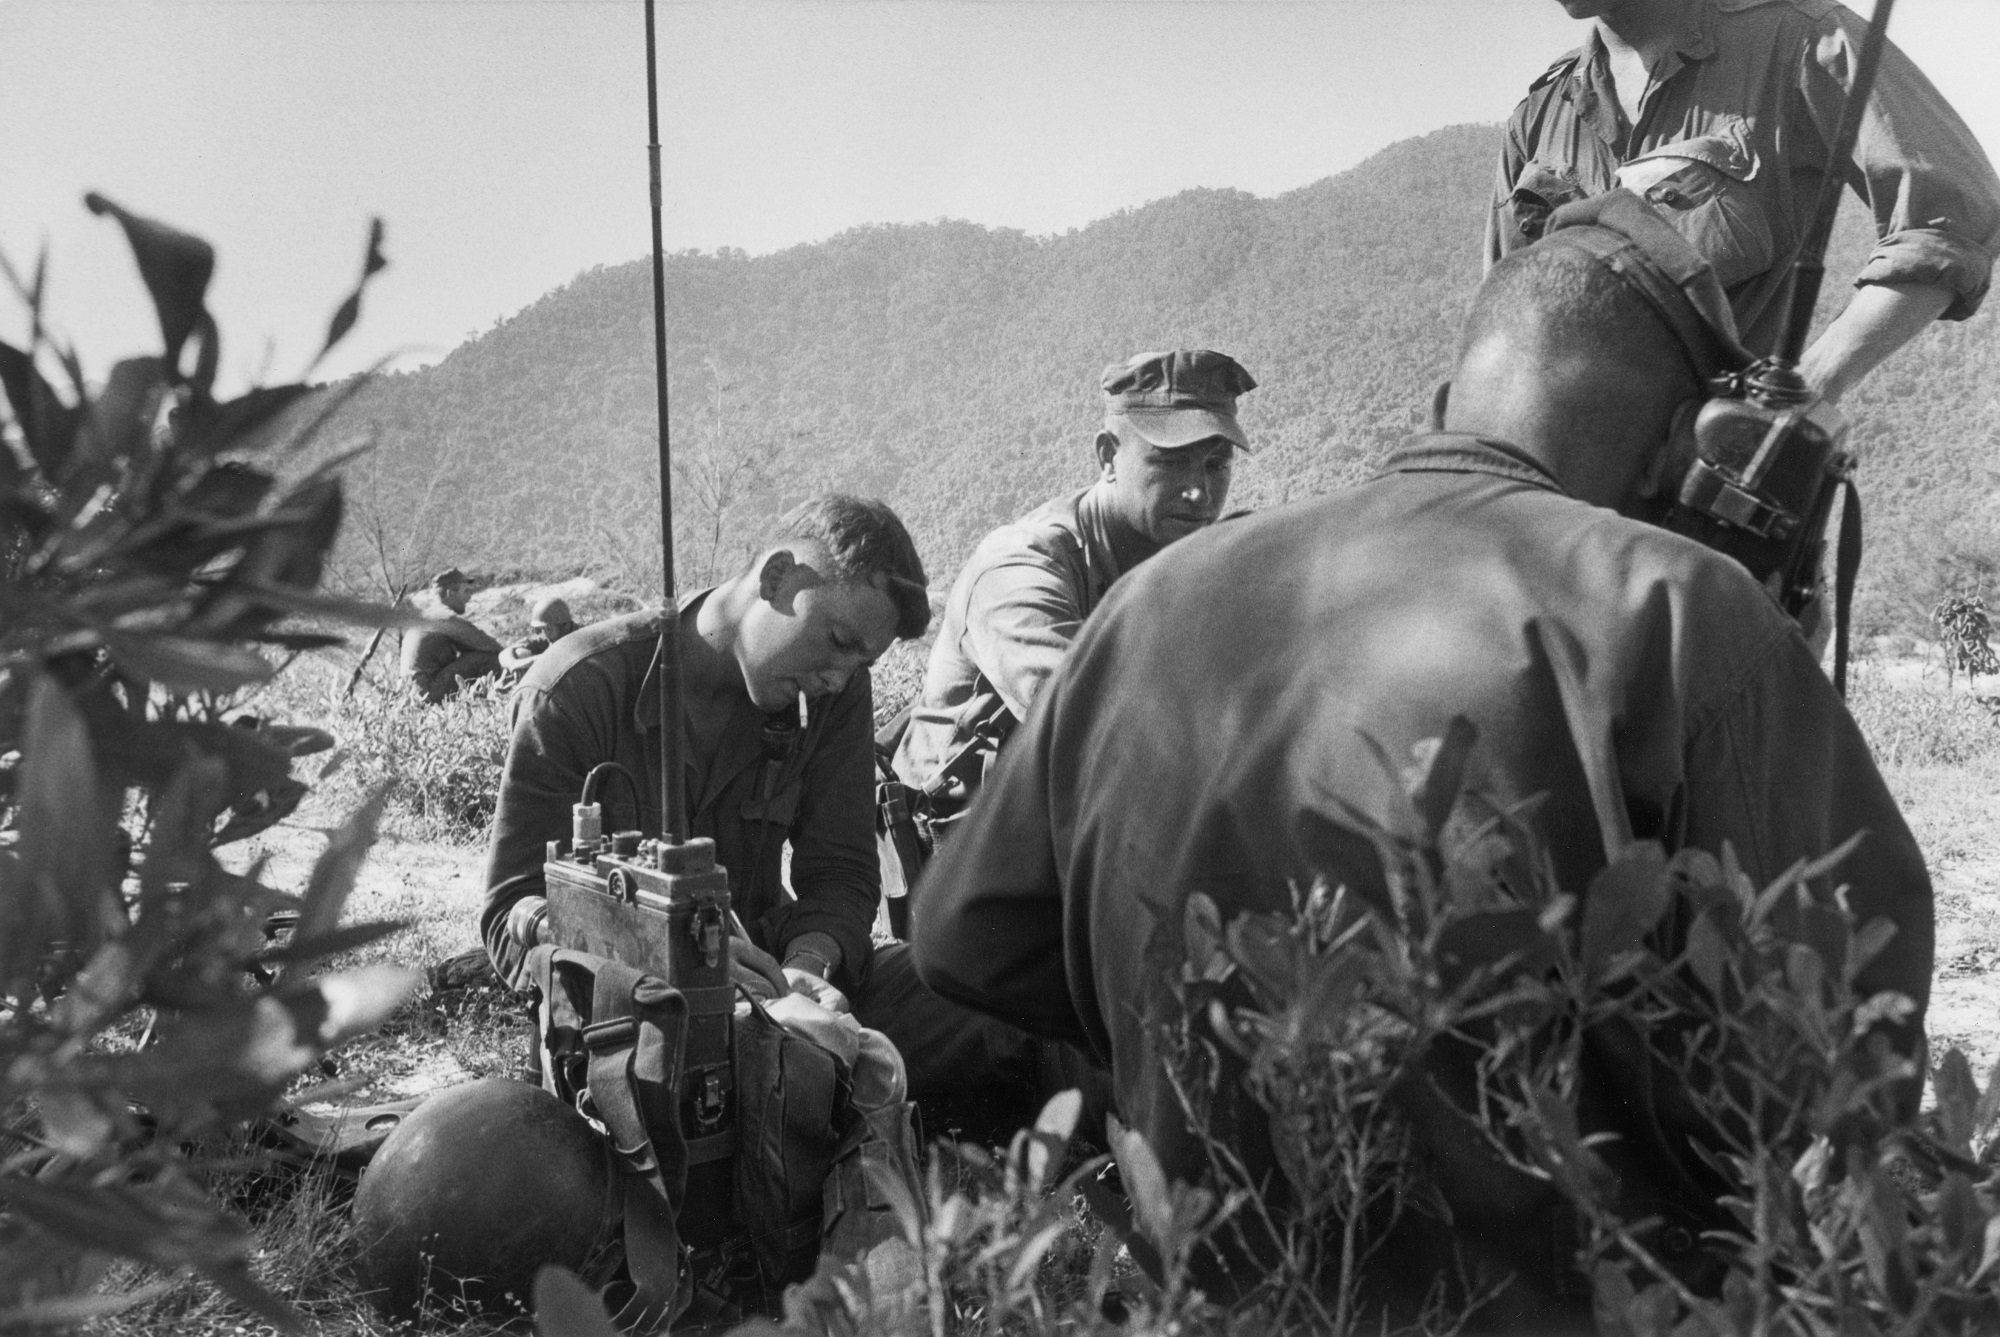 Marine radiomen in the field checking their equipment, 1965. (Wisconsin Historical Images 115595)